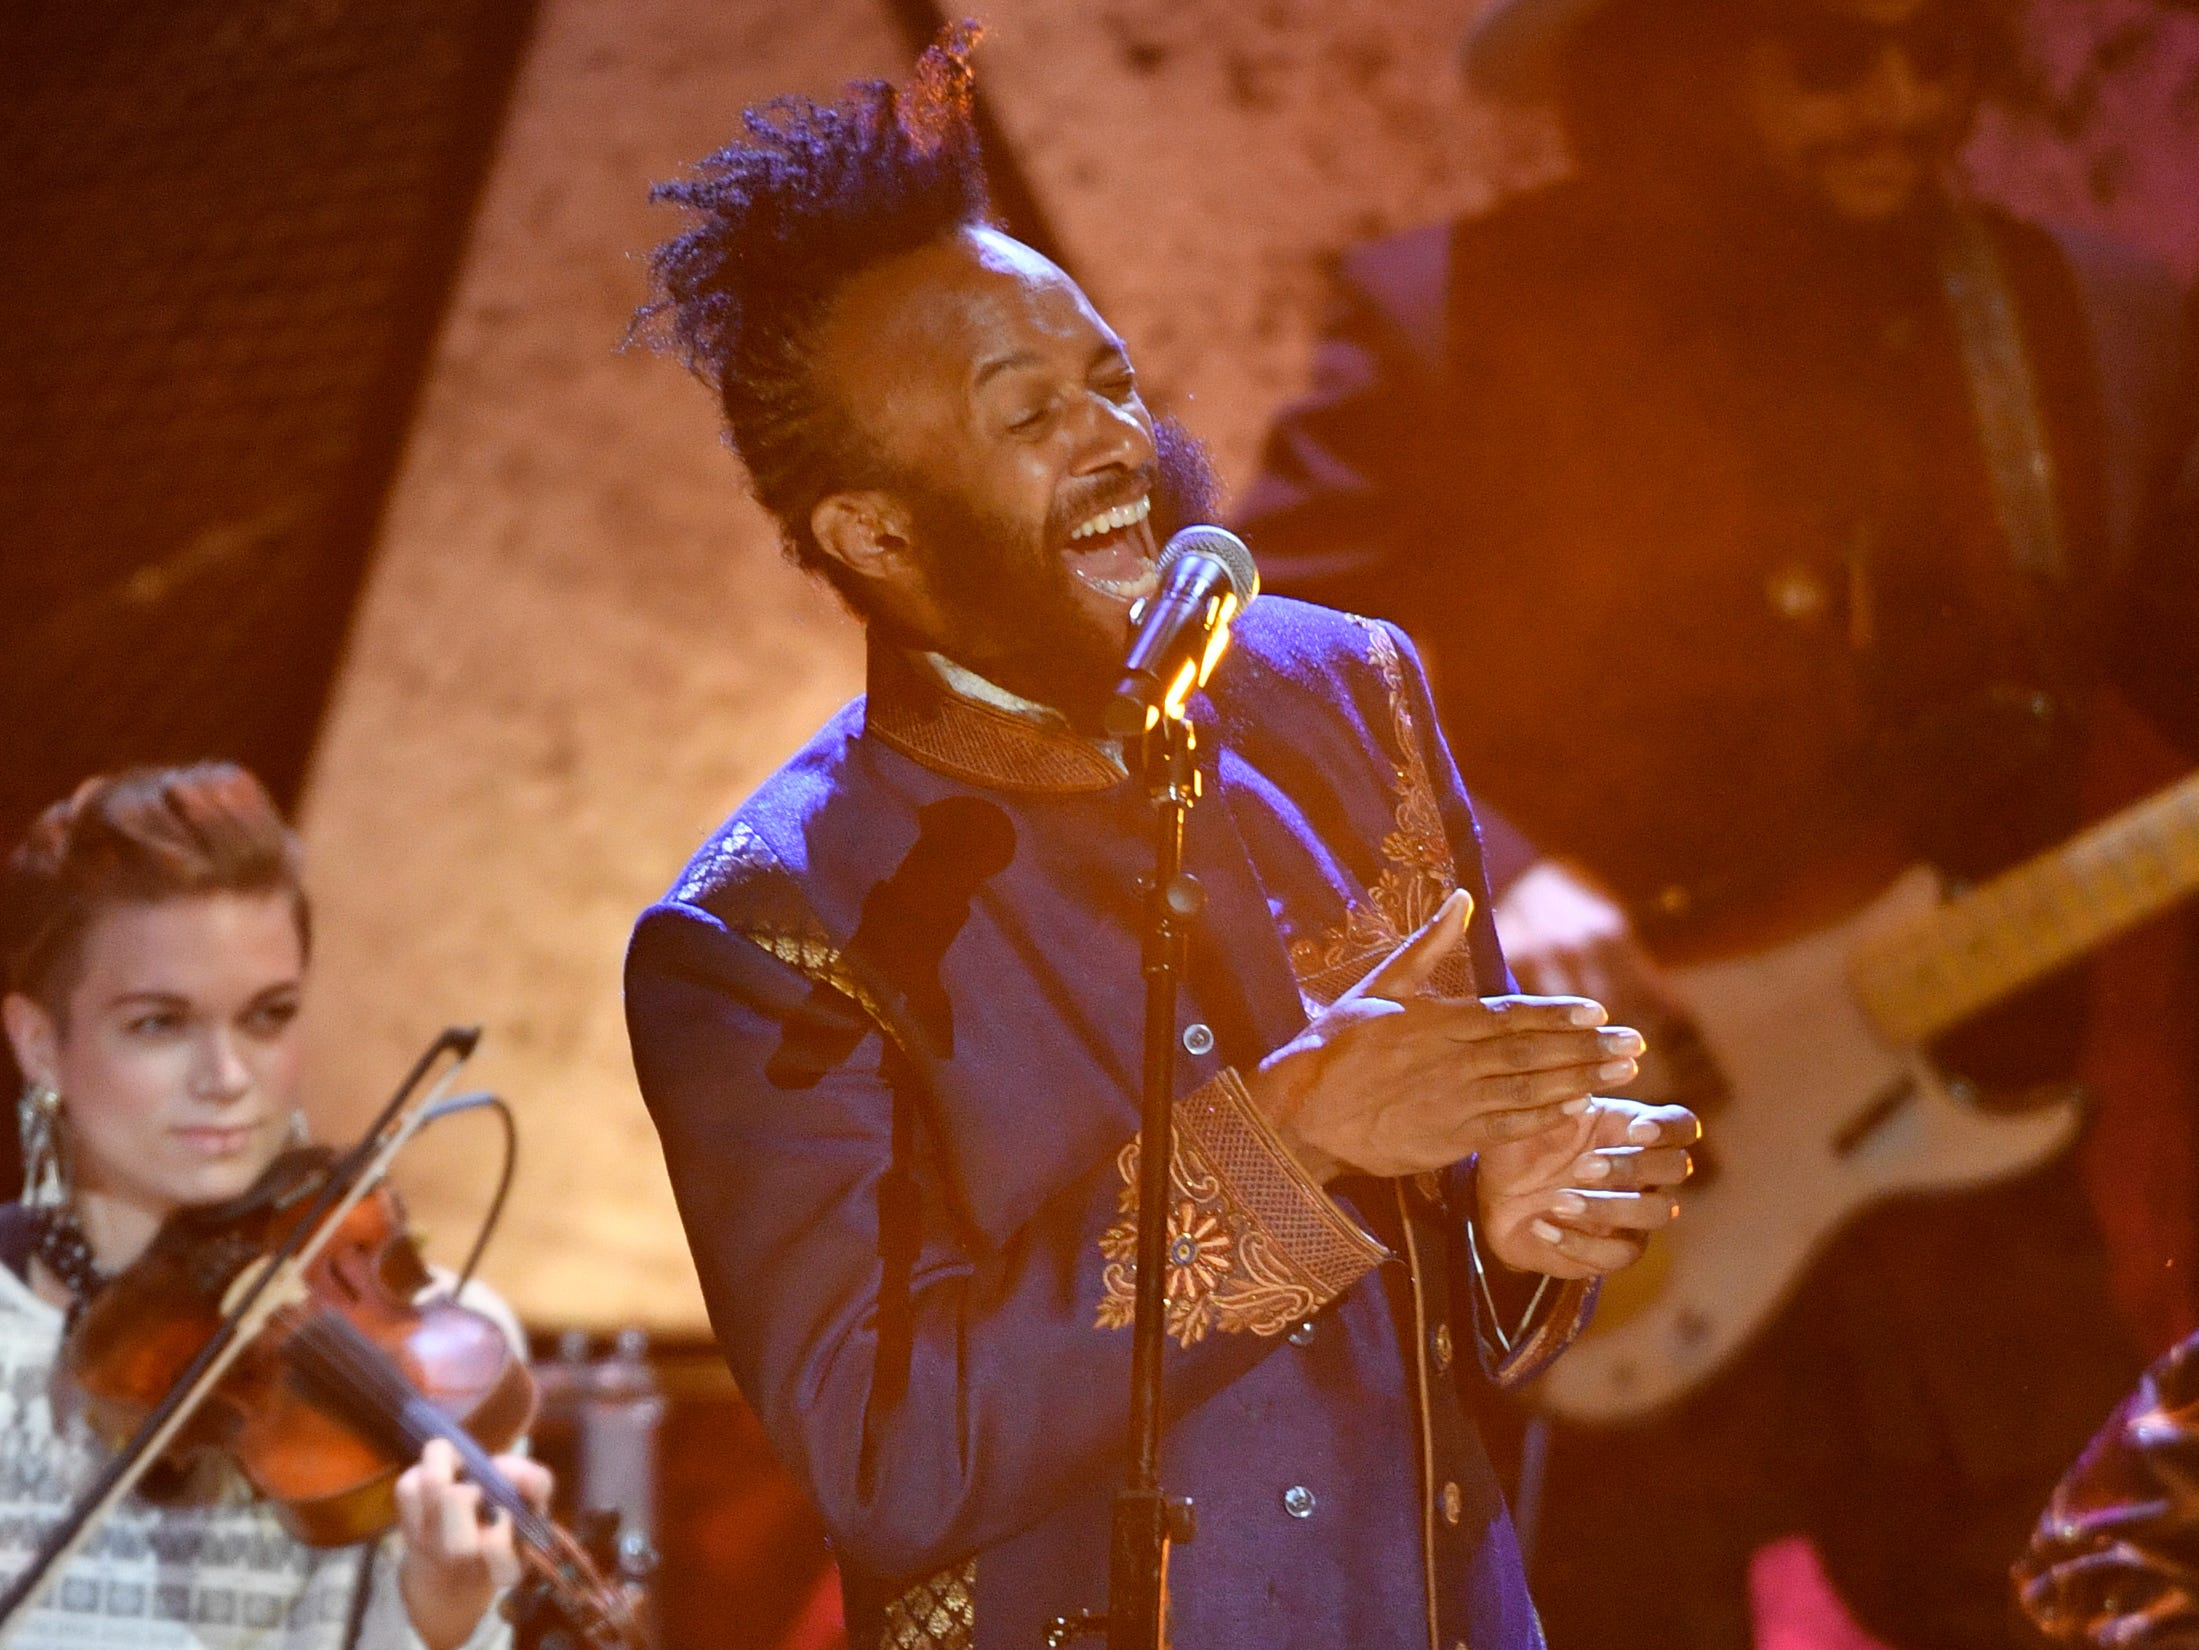 Fantastic Negrito performs during the 2018 Americana Honors and Awards show at the Ryman Auditorium in Nashville, Tenn., Wednesday, Sept. 12, 2018.